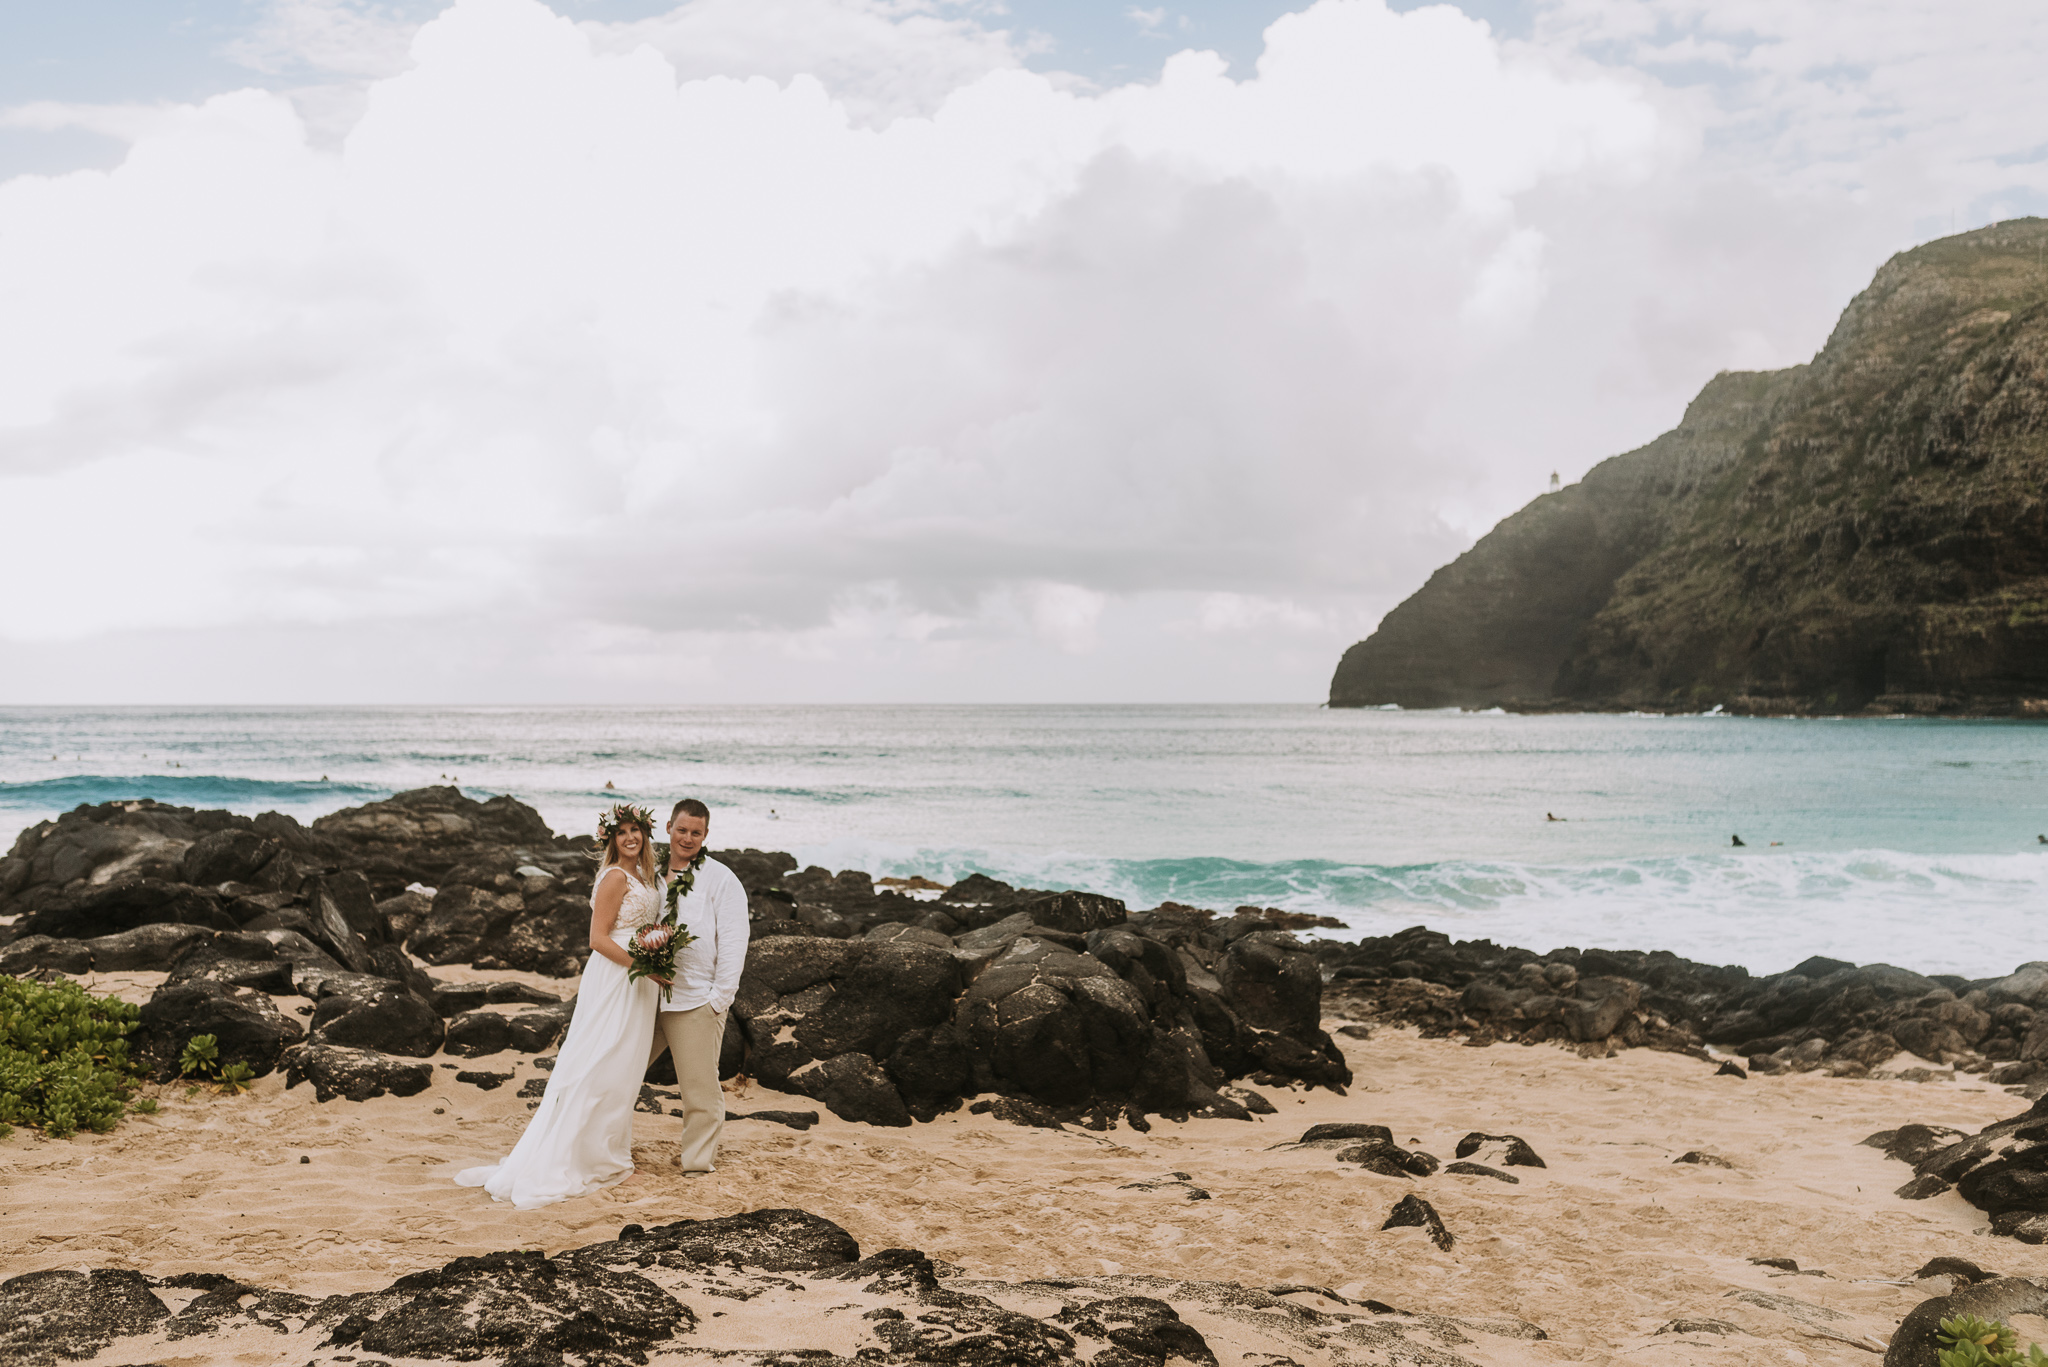 hawaii-wedding-destination-photographer-oahu-53.jpg